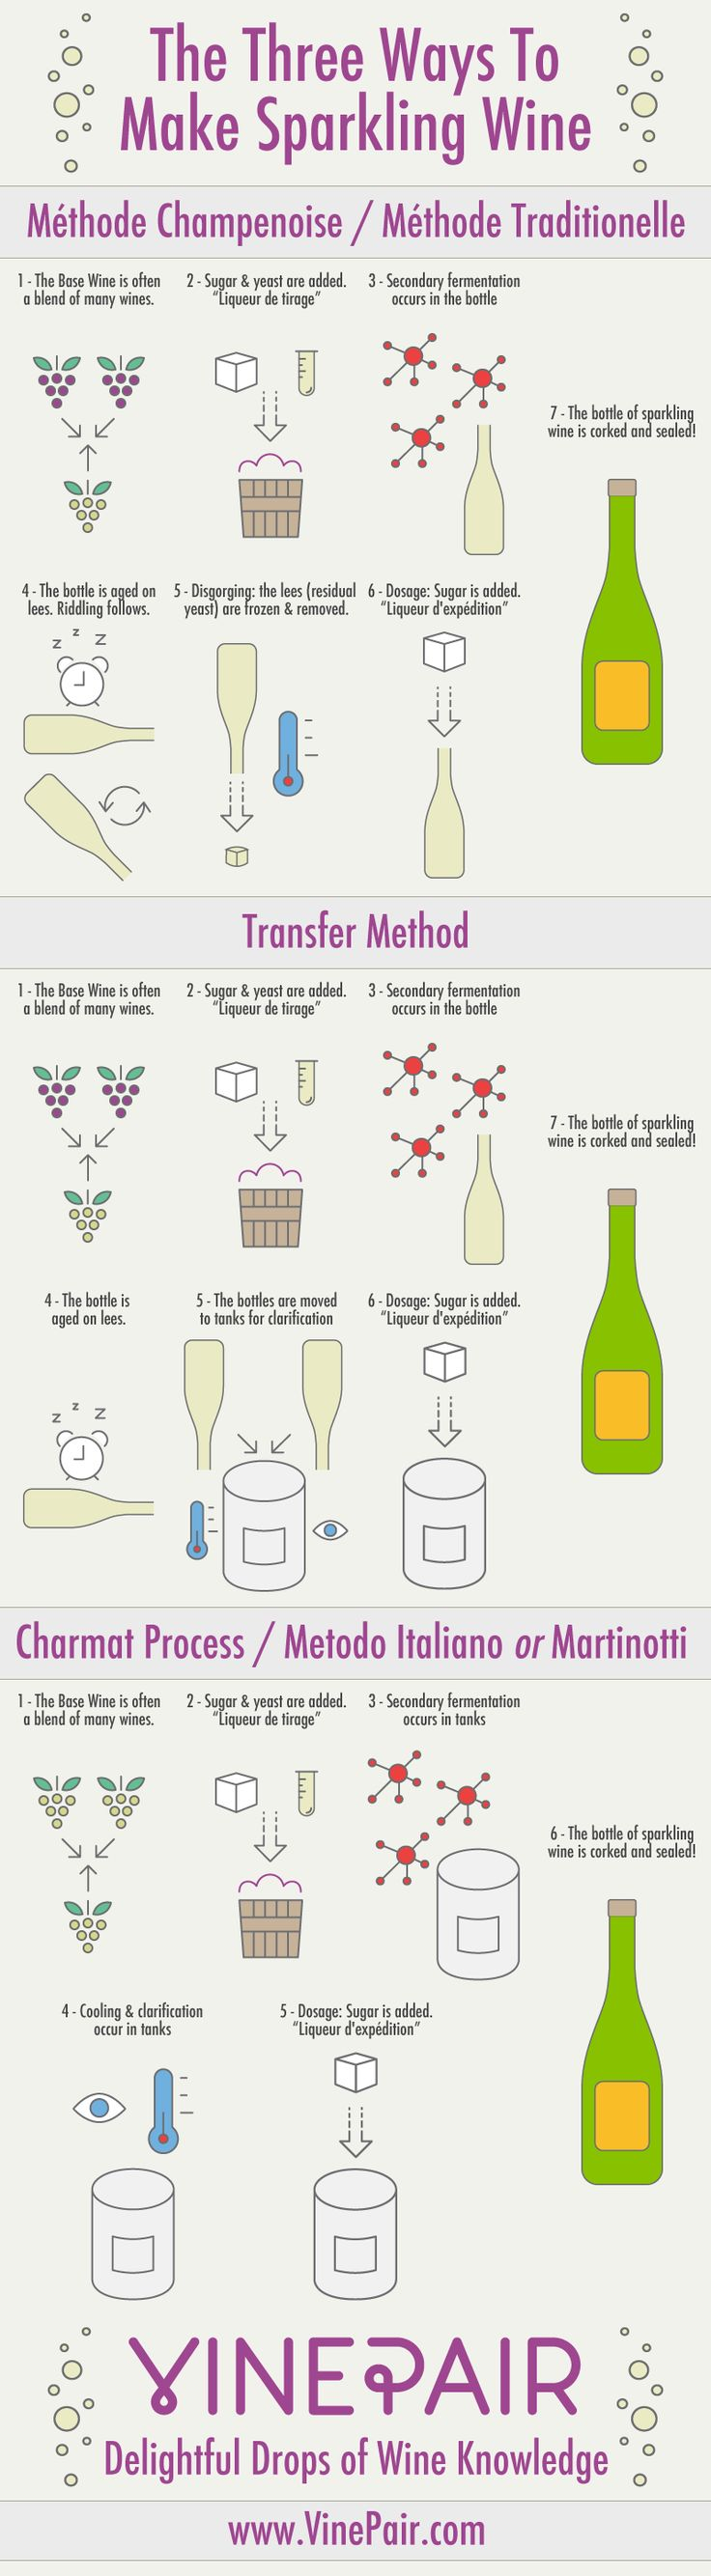 Infographic - The Three Ways To Make Sparkling Wine